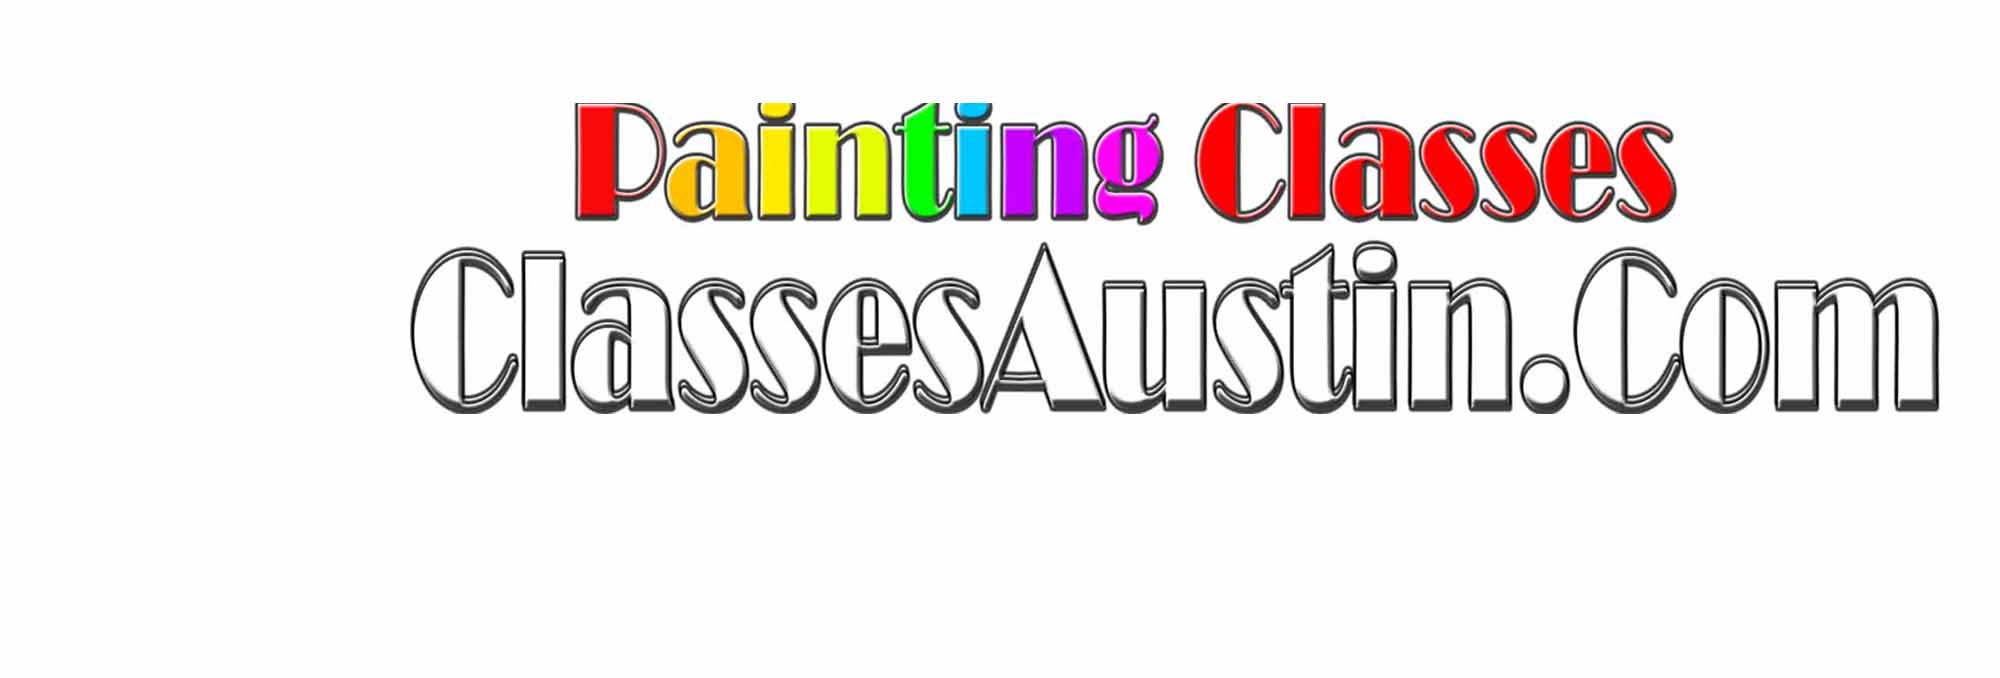 ustin Painting Class